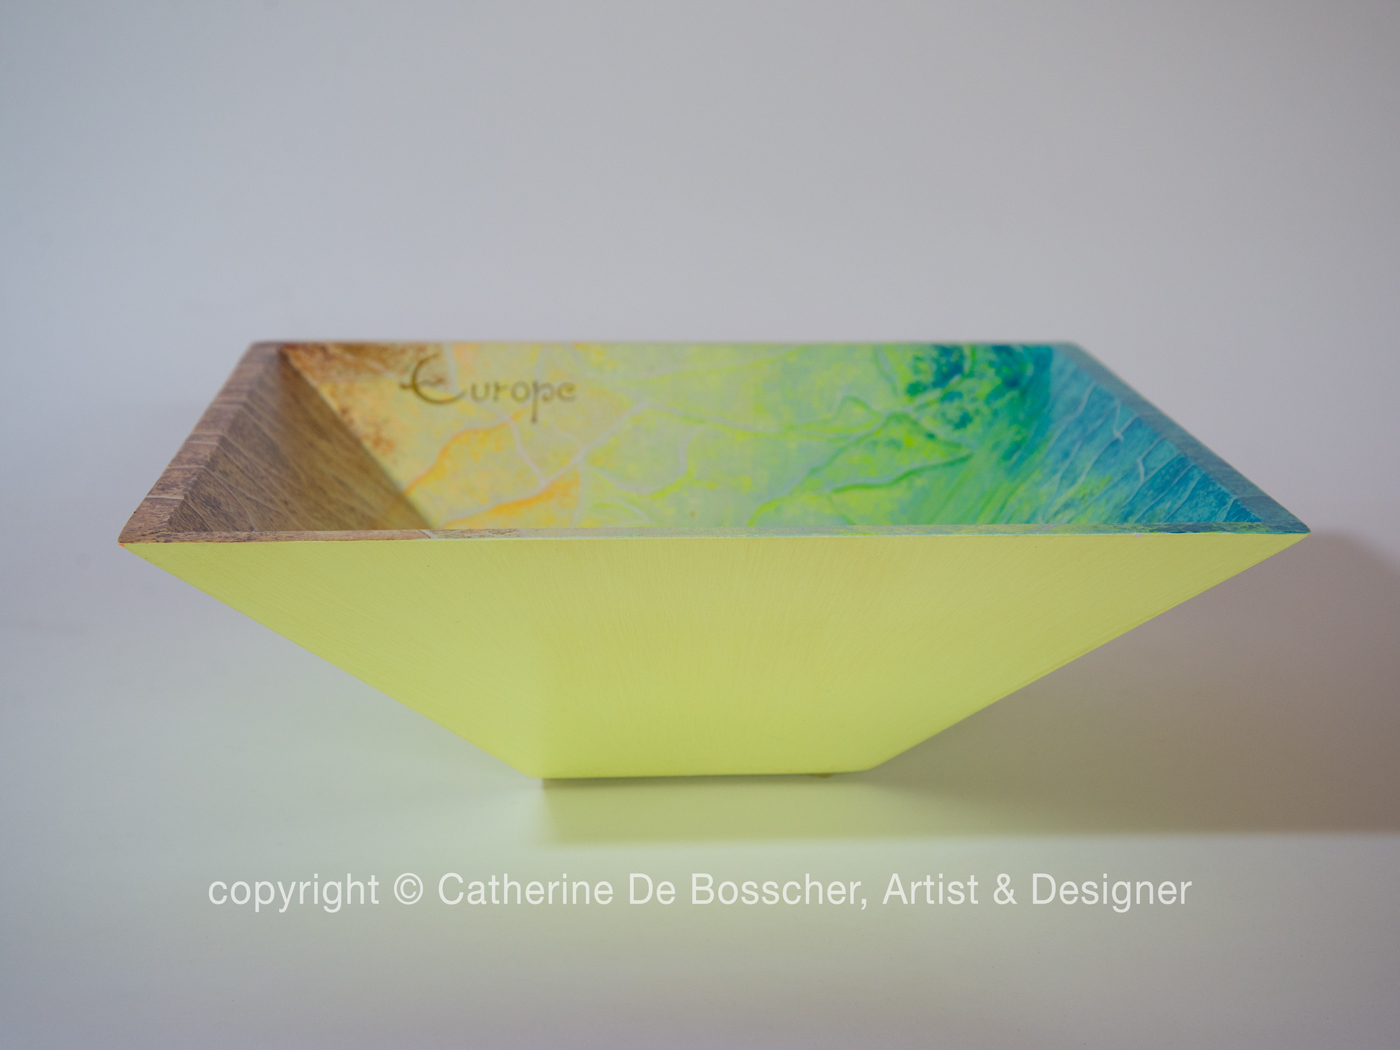 """Satellite Europa"" Pyramidal Bowl by Catherine De Bosscher"